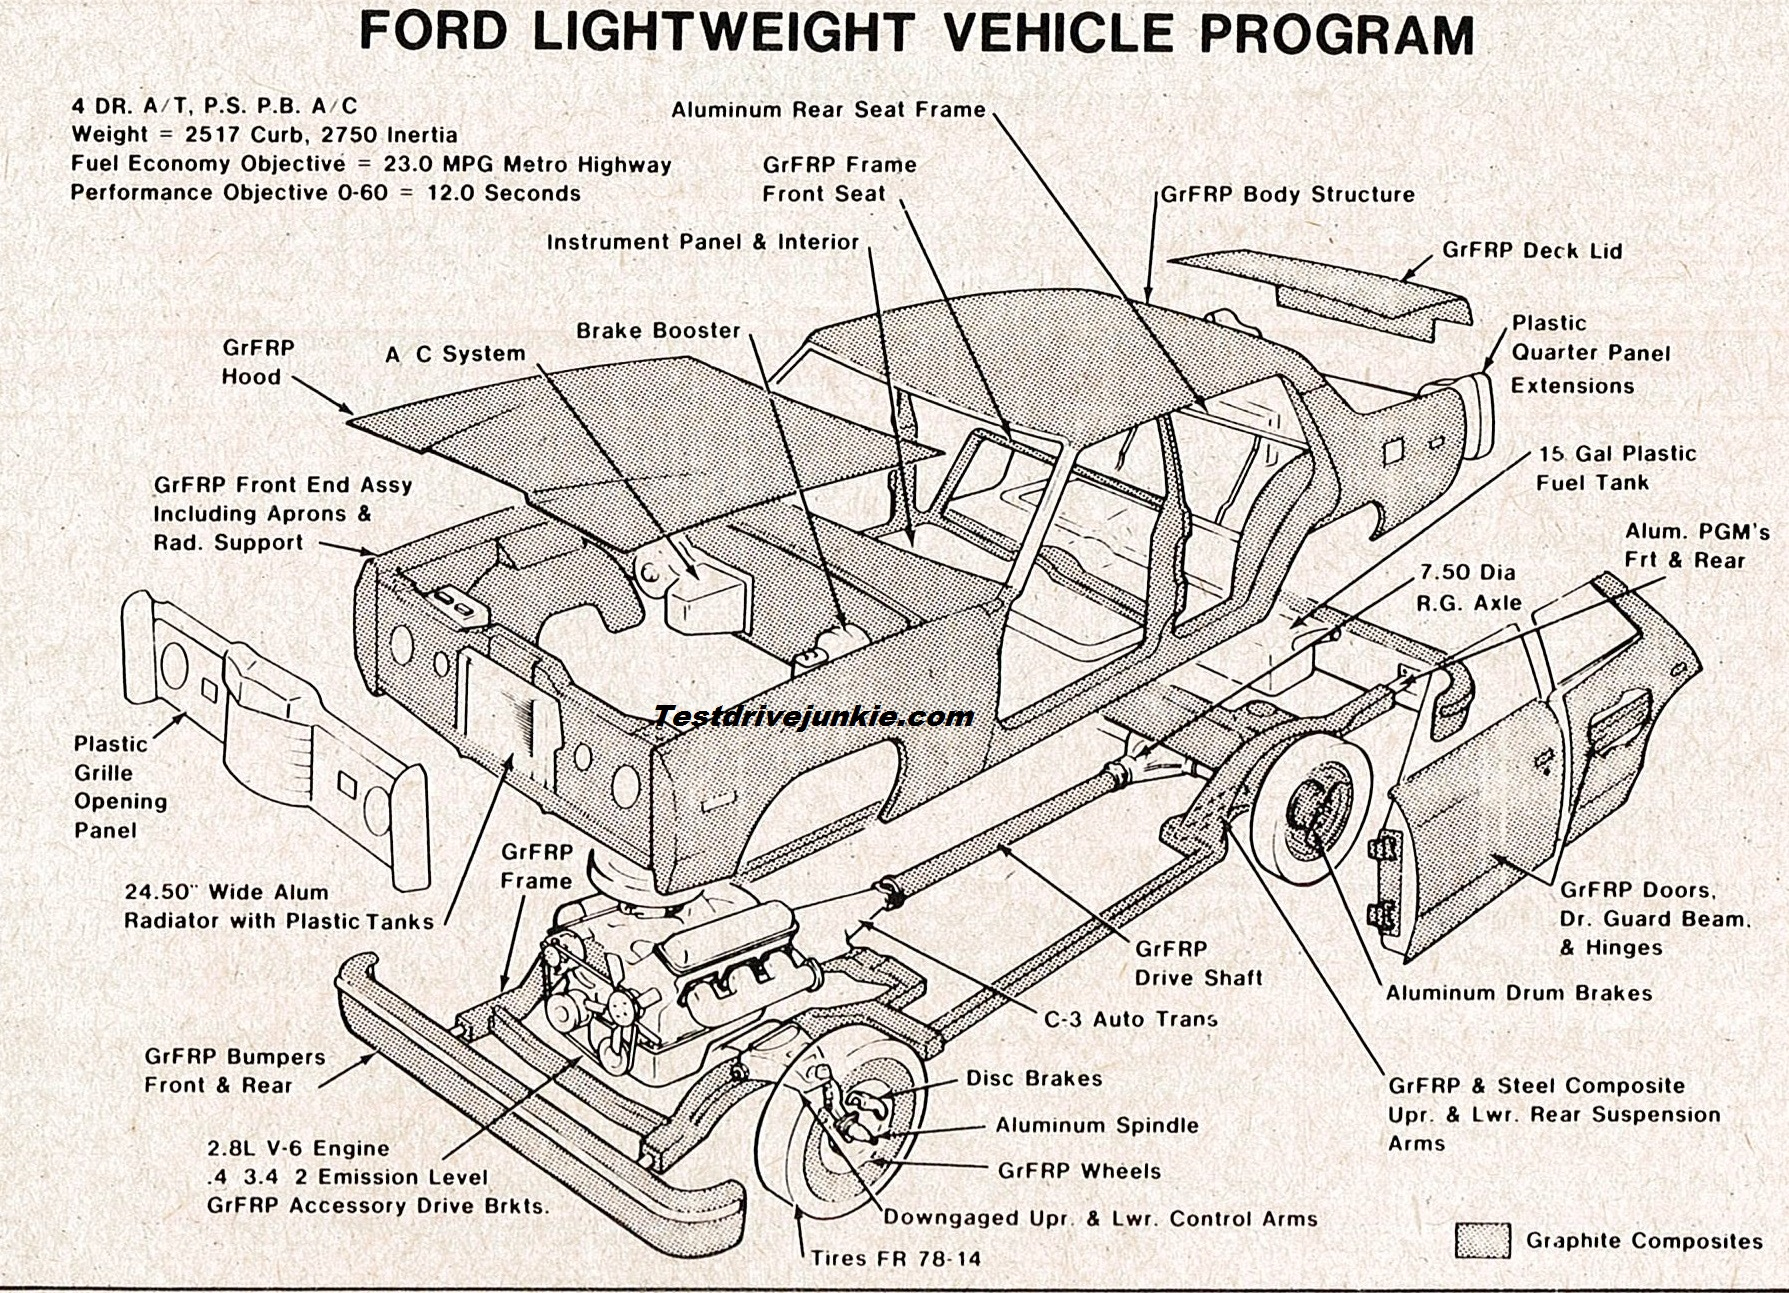 1985 Ford Ltd Engine Diagram Wiring Library 1987 Fuse Box In February 1979 An Experimental With Body And Chassis Components Made Of Graphite